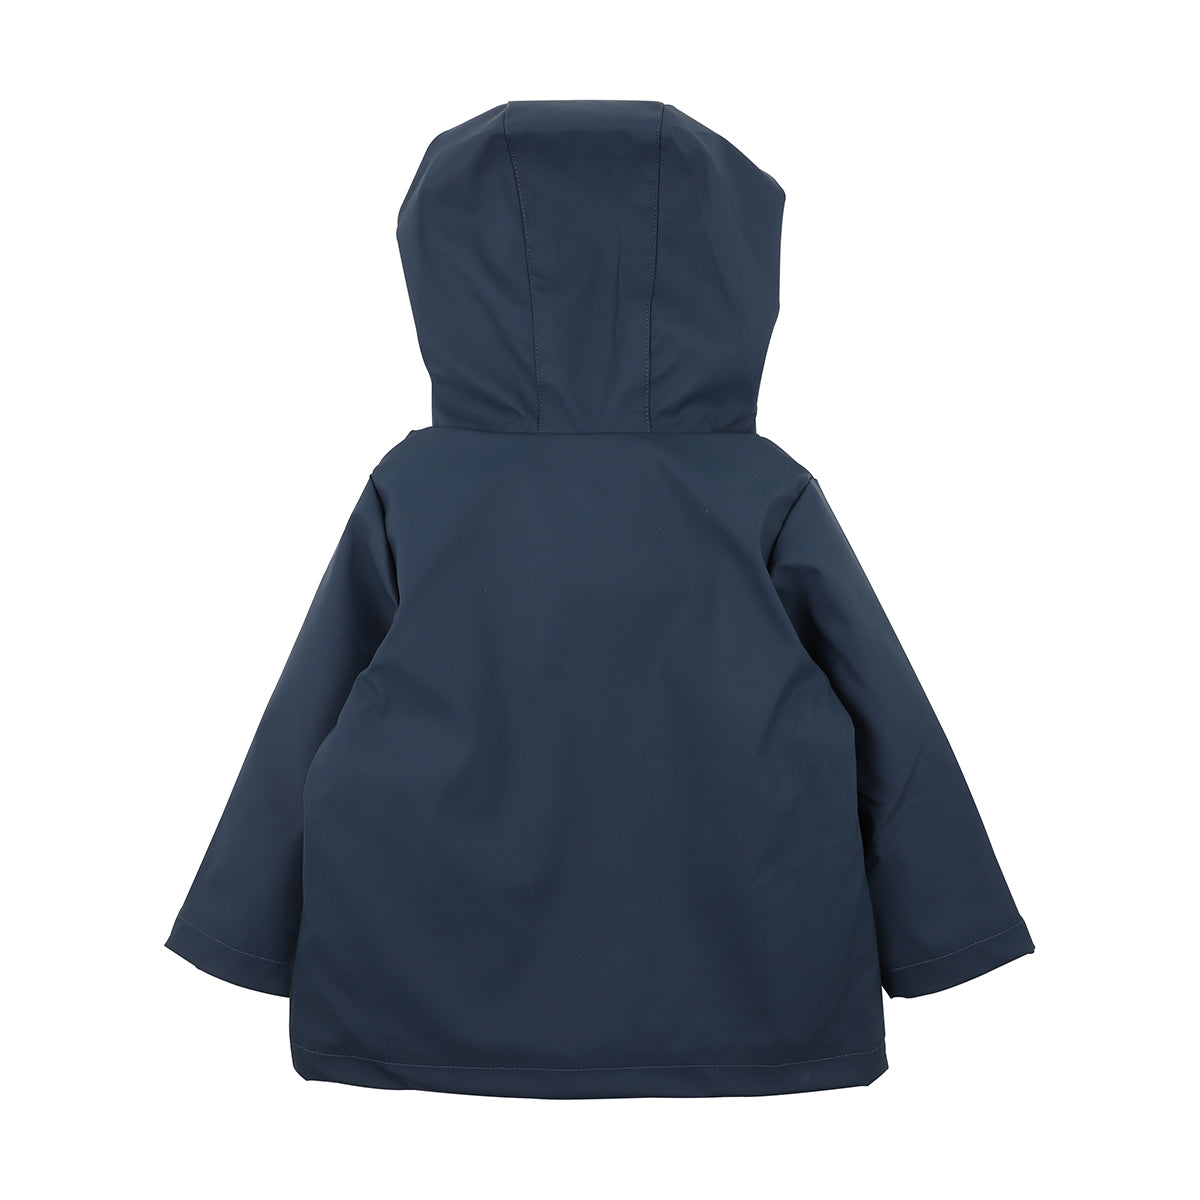 Bebe - Boys Navy Lined Rain Coat